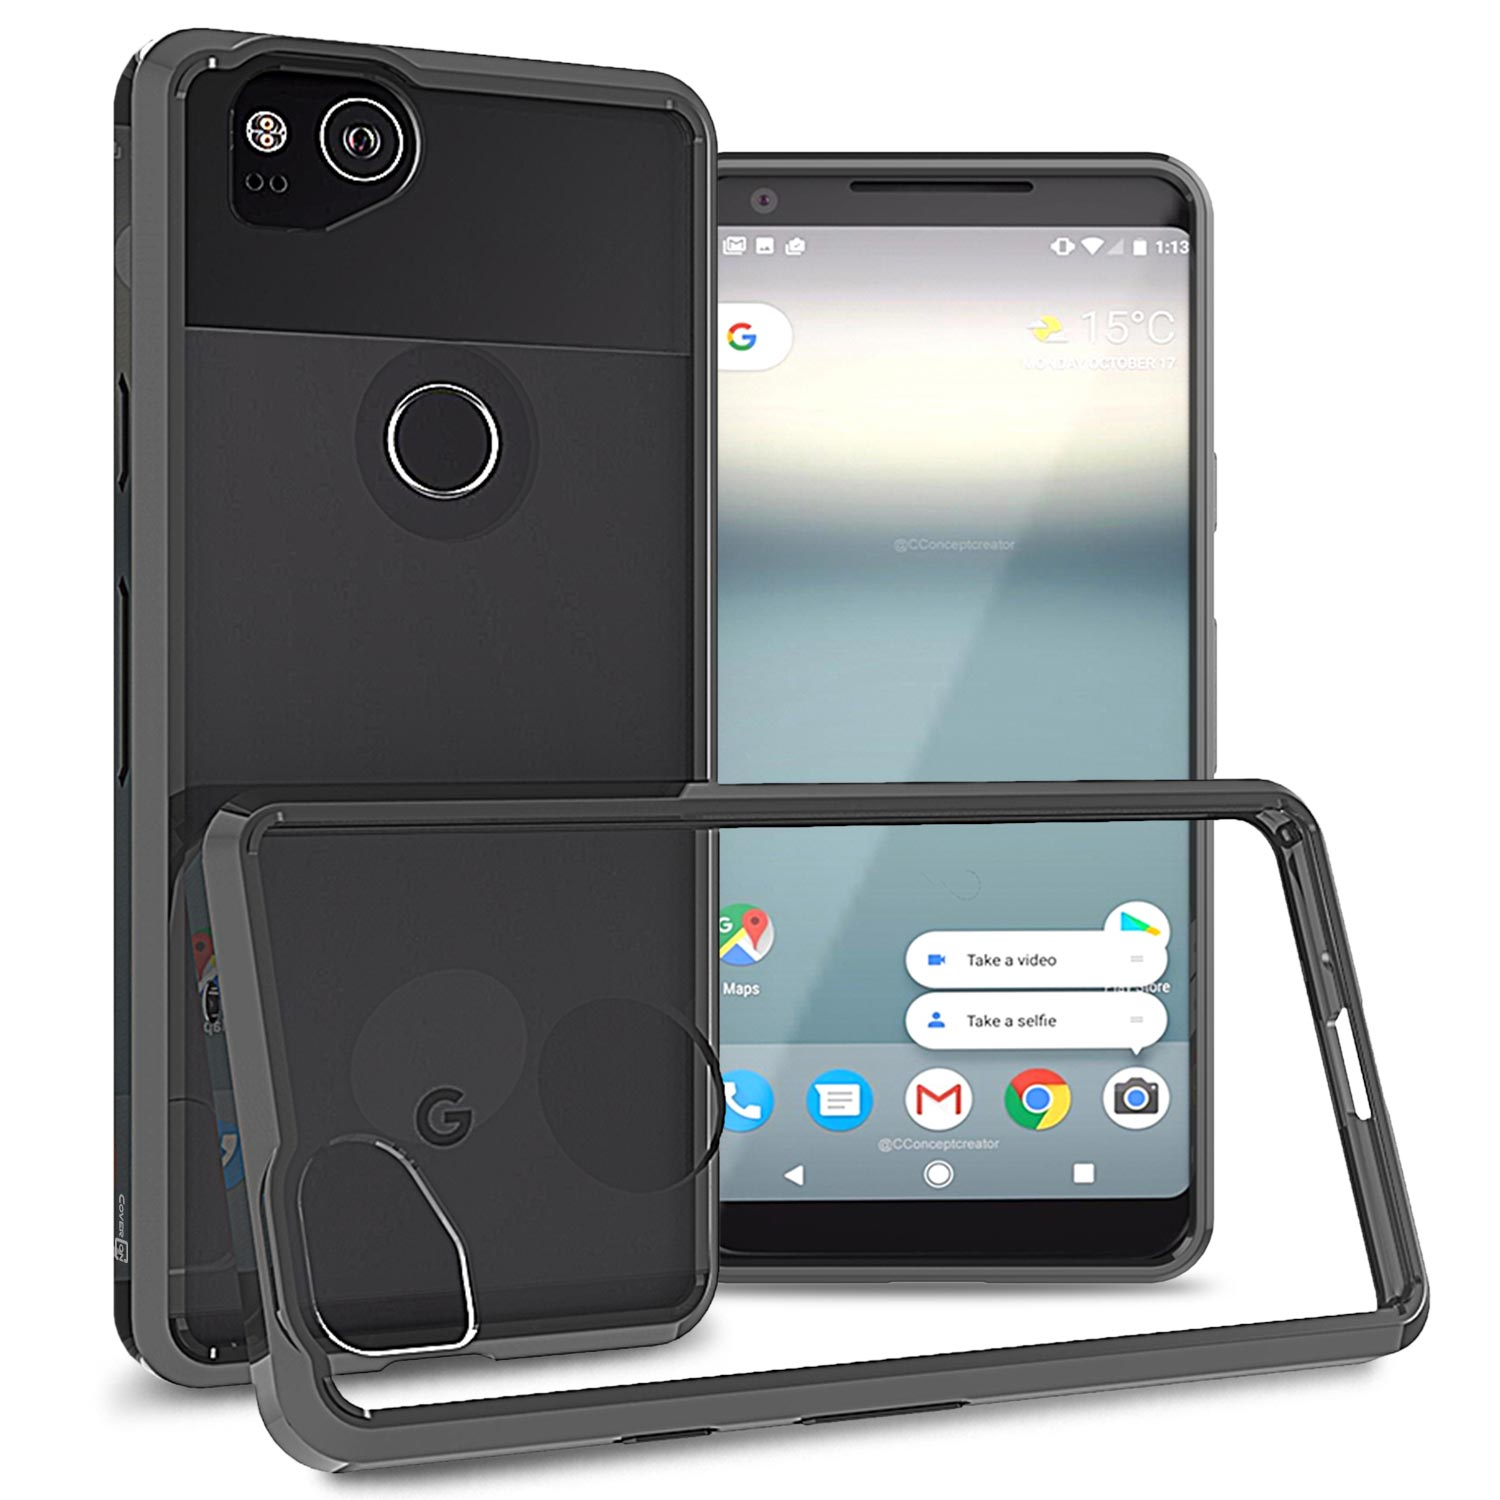 CoverON Google Pixel 2 Case, ClearGuard Series Clear Hard Phone Cover